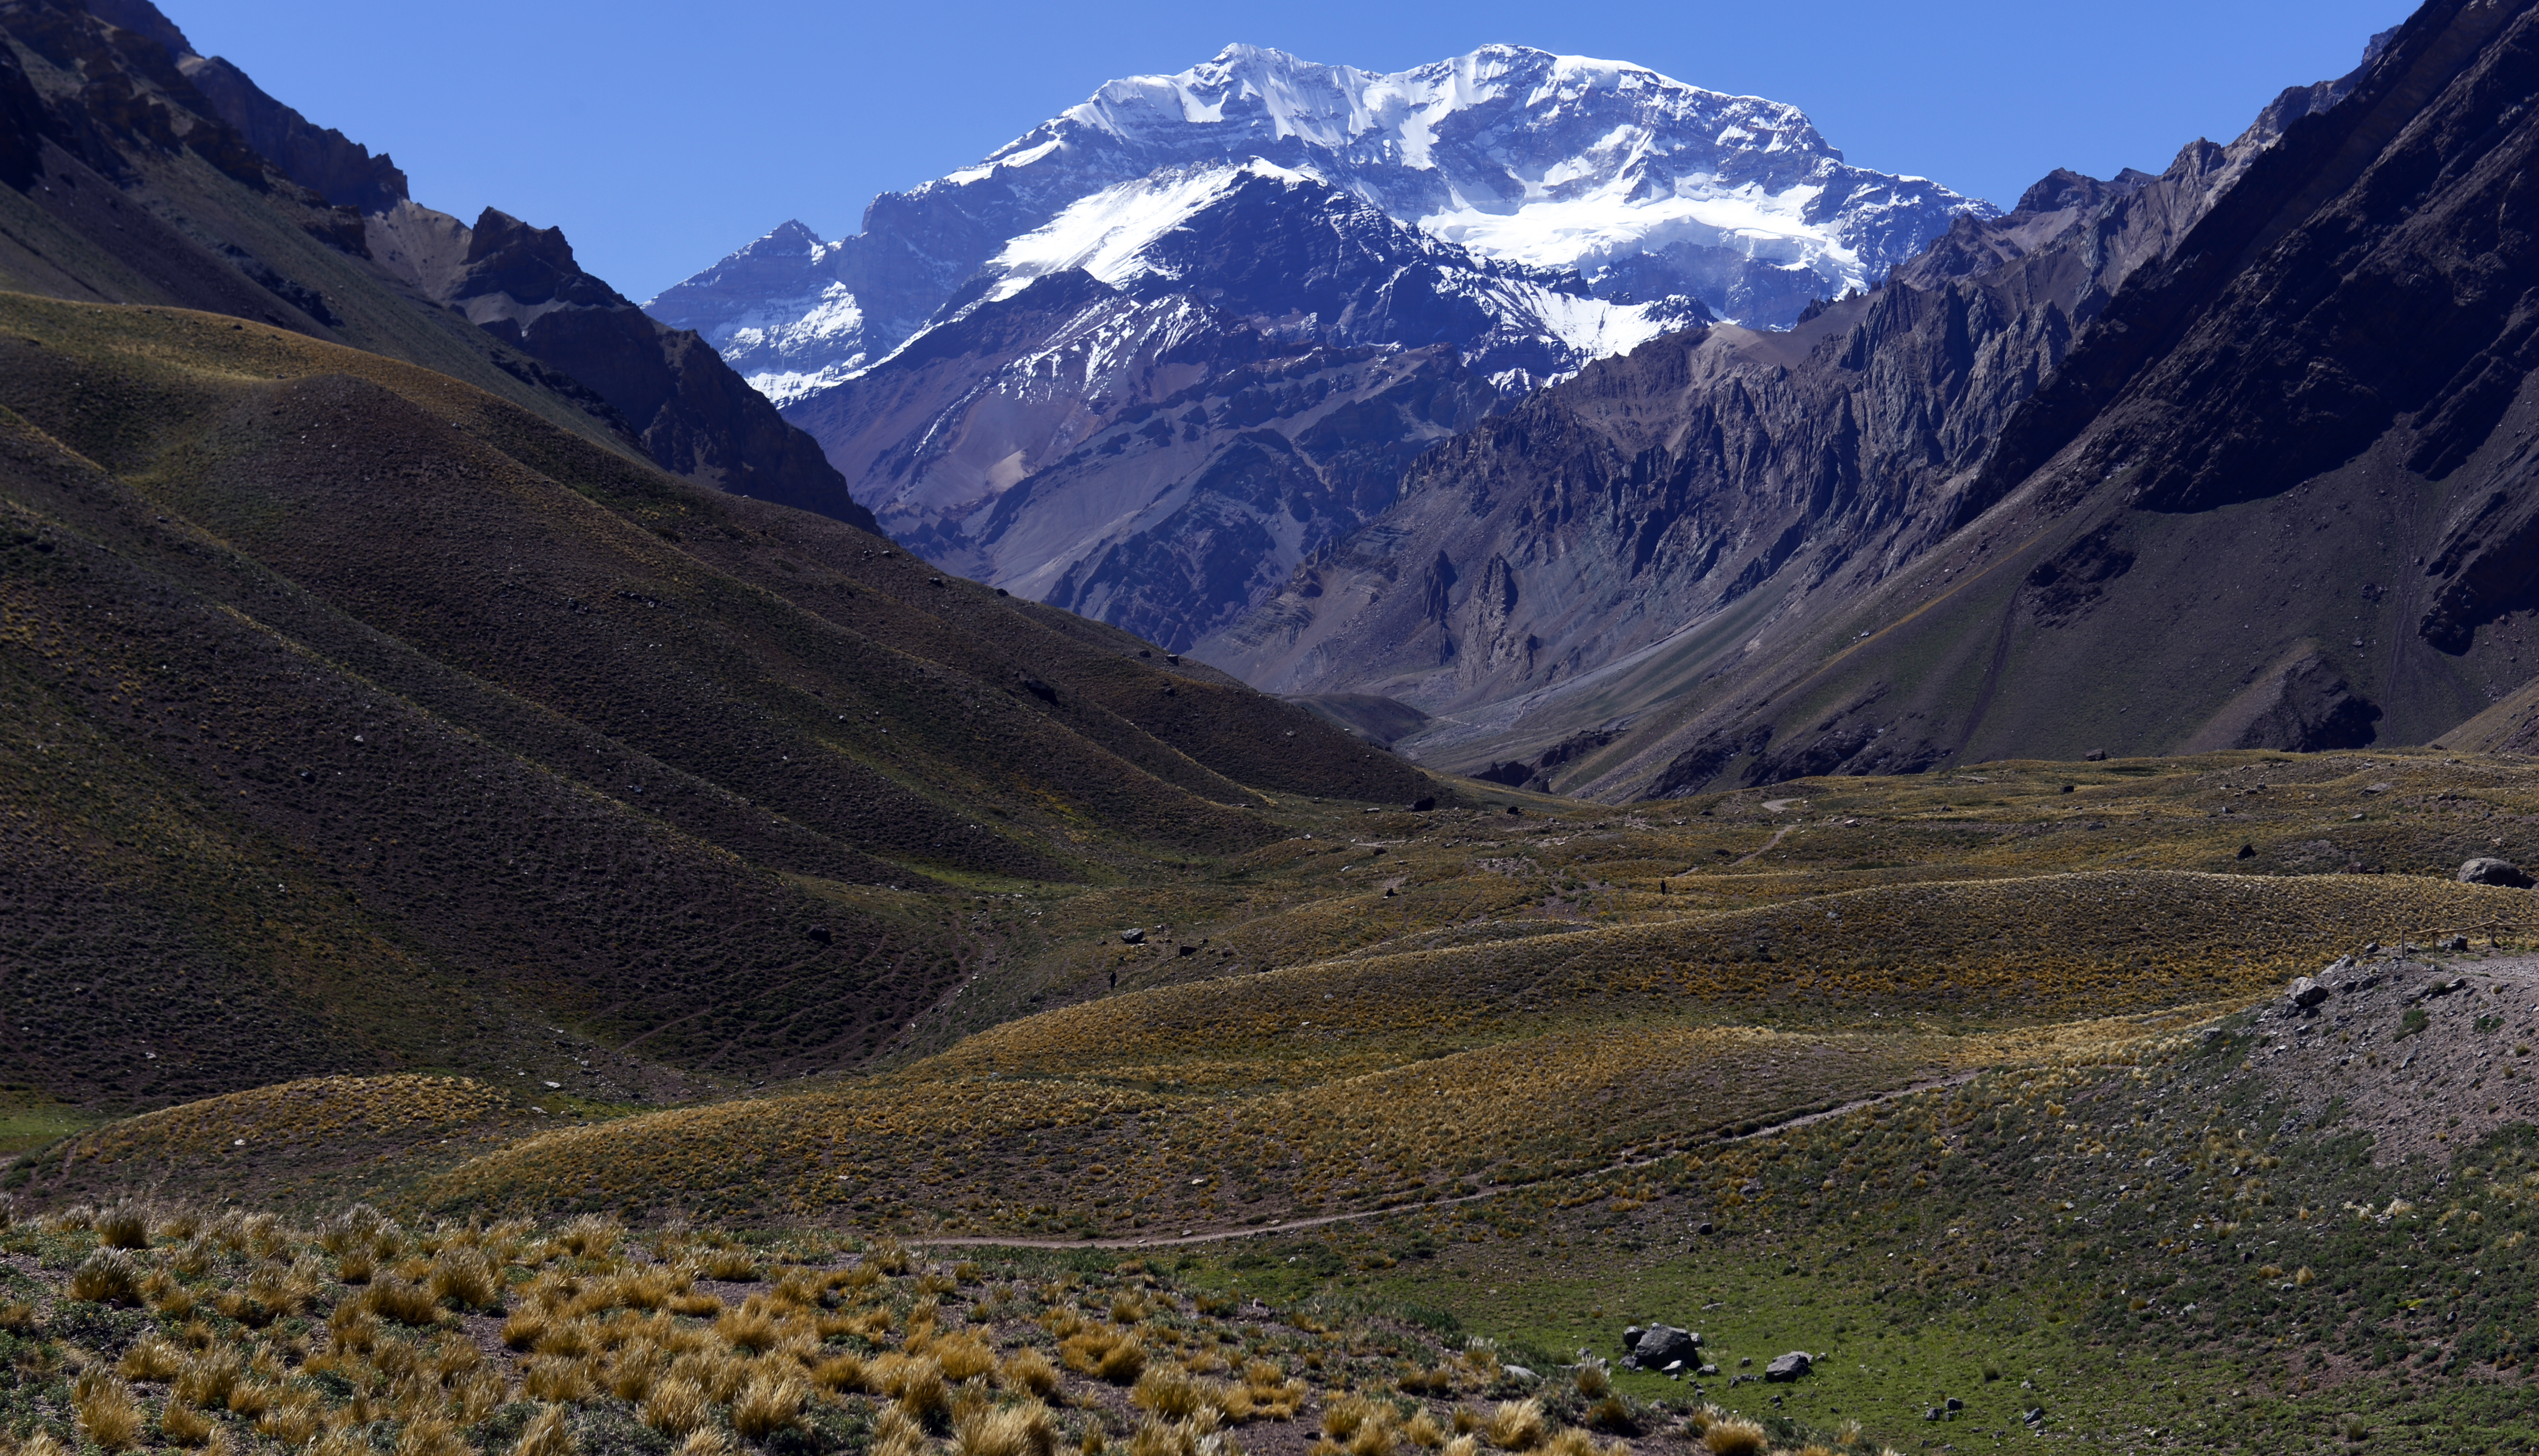 Tom Taplin wrote a book about his trip to the Aconcagua, the highest mountain in South America. (Getty)